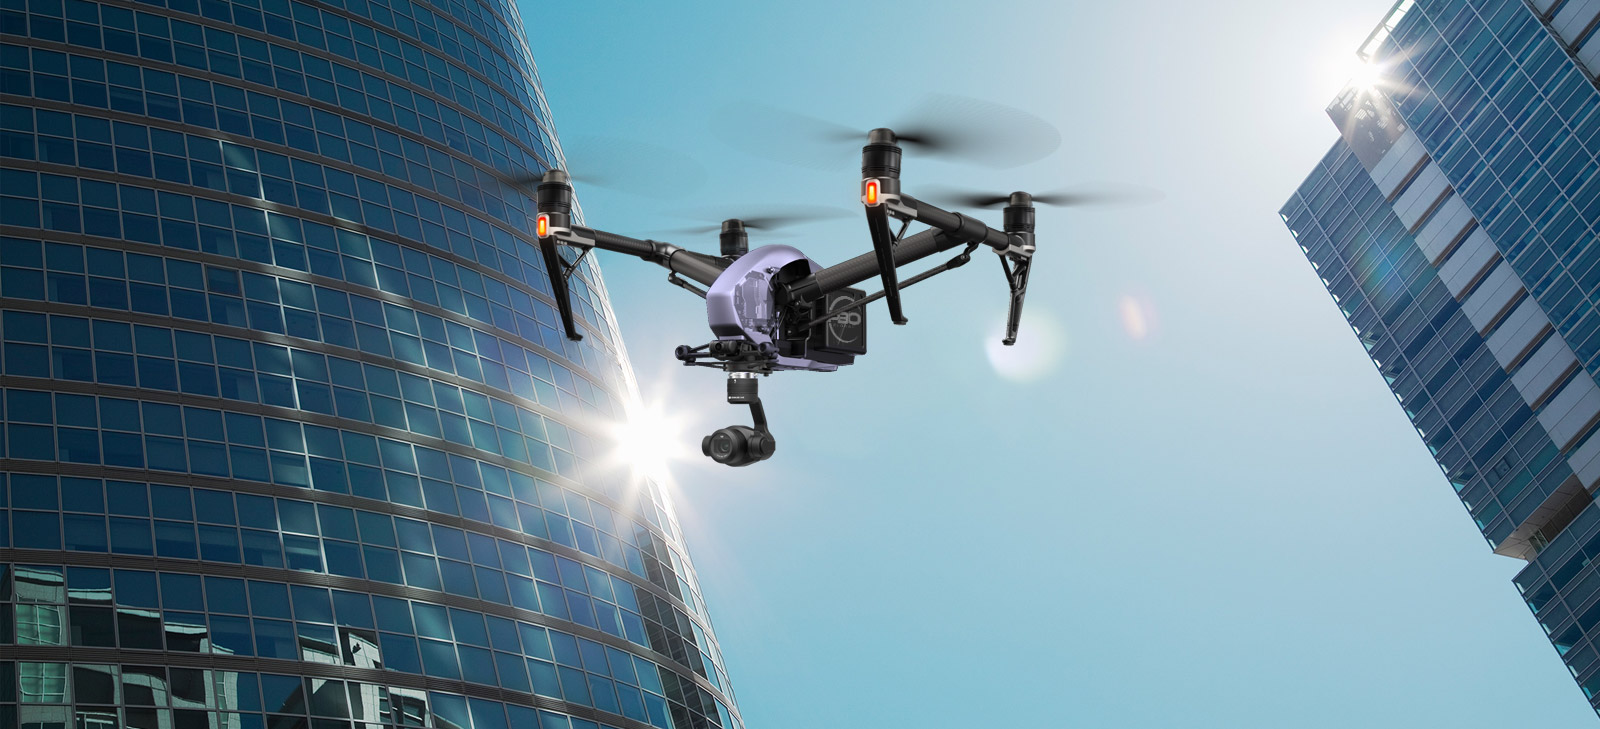 a flying drone on a modern city with high rise buildings